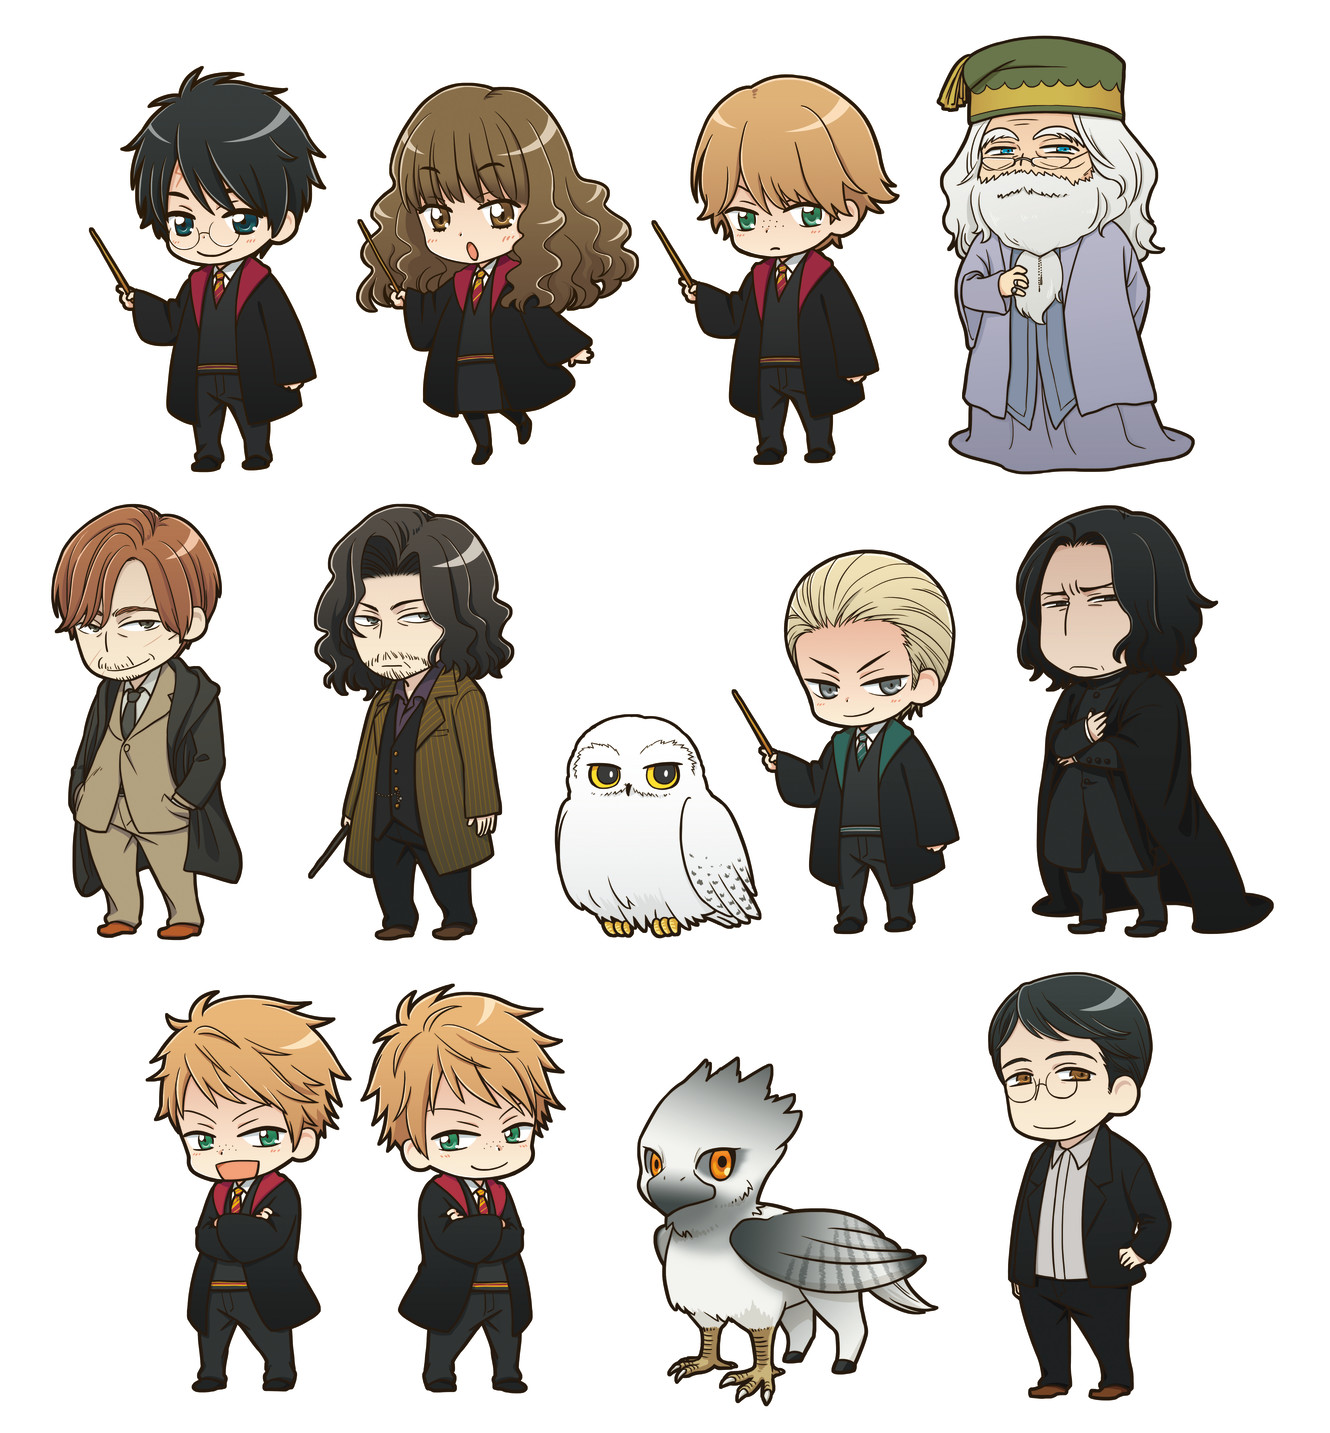 personagens de harry potter ganham adoravel versao kawaii o profeta diario personagens de harry potter ganham